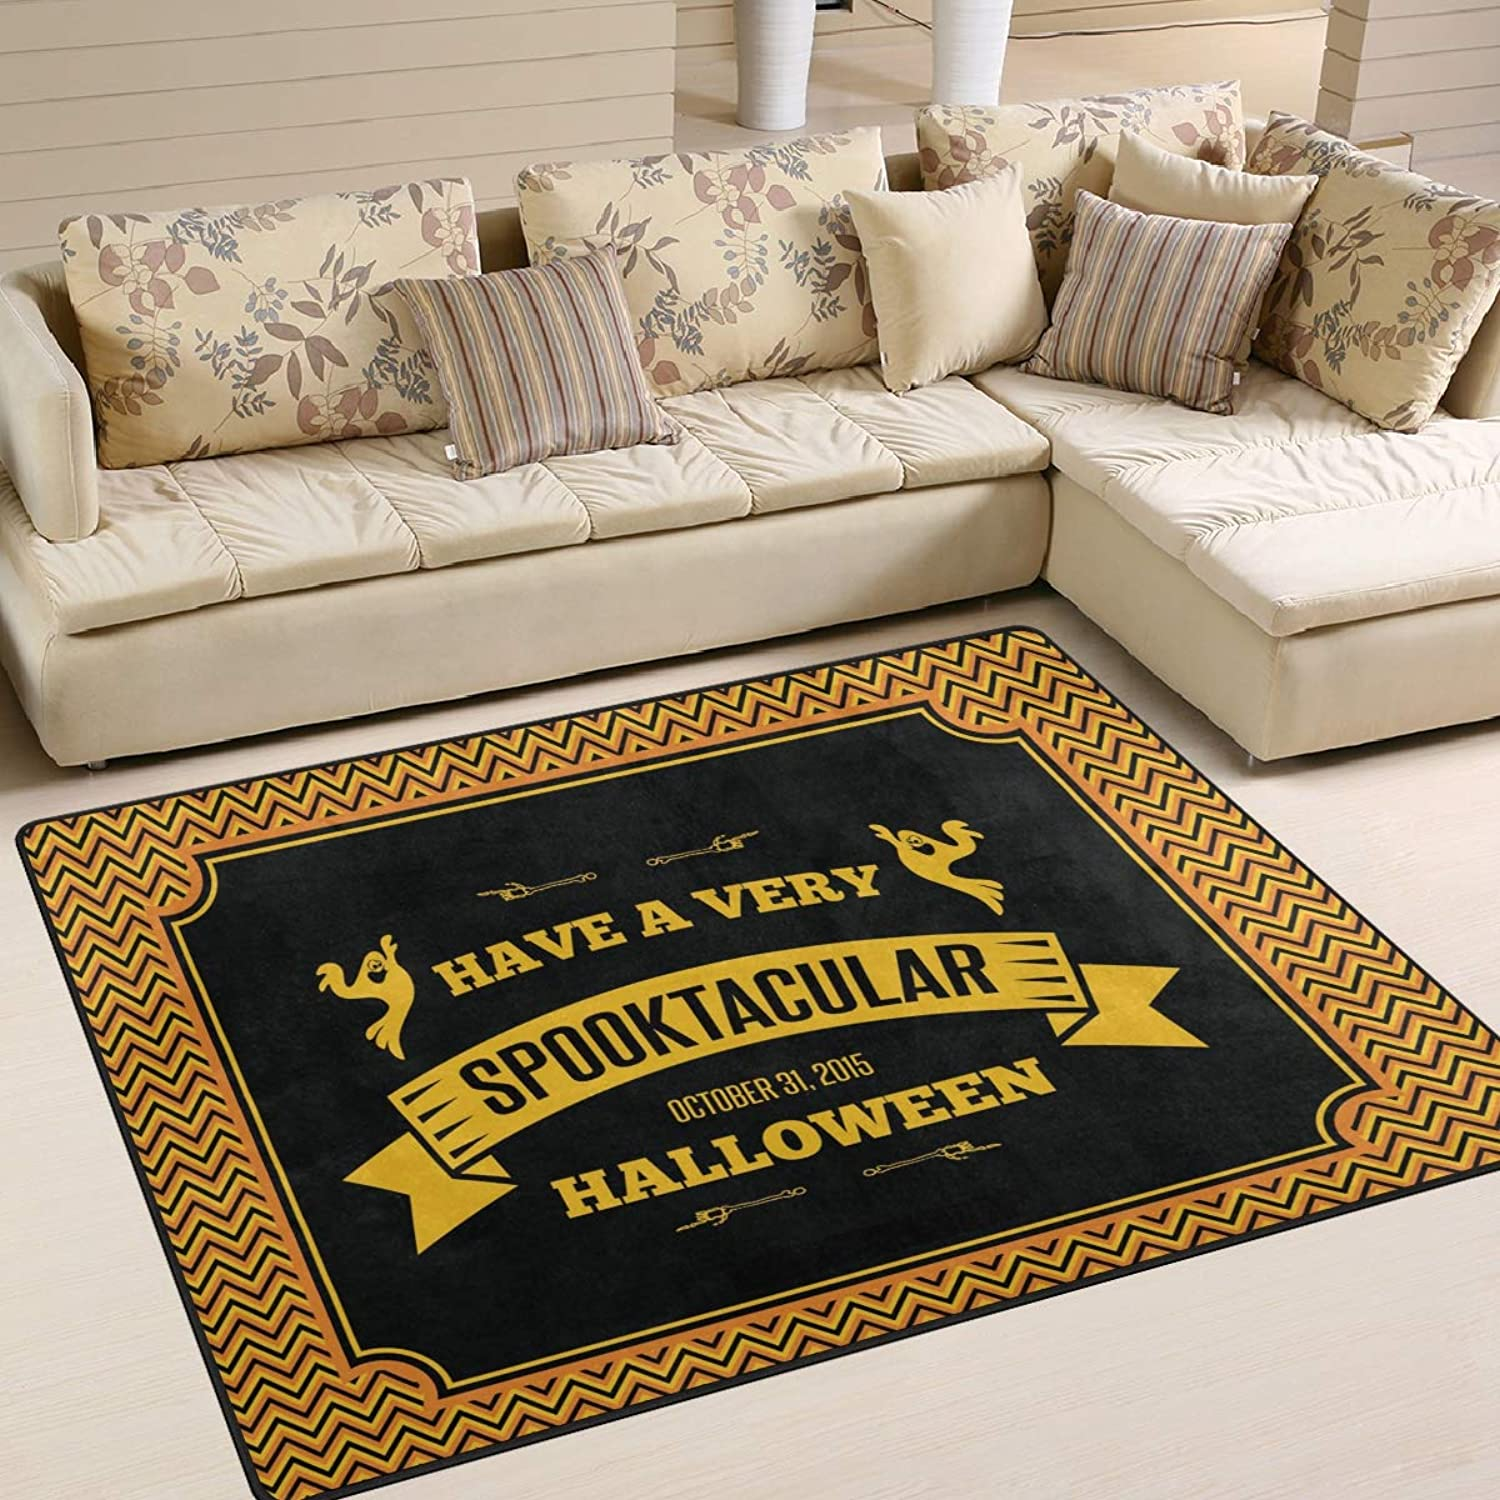 Halloween Area Rugs 80 x 58 Inch Door Mats Indoor Polyester Non Slip Multi Rectangle Carpet Kitchen Floor Runner Decoration Home Bedroom Living Dining Room